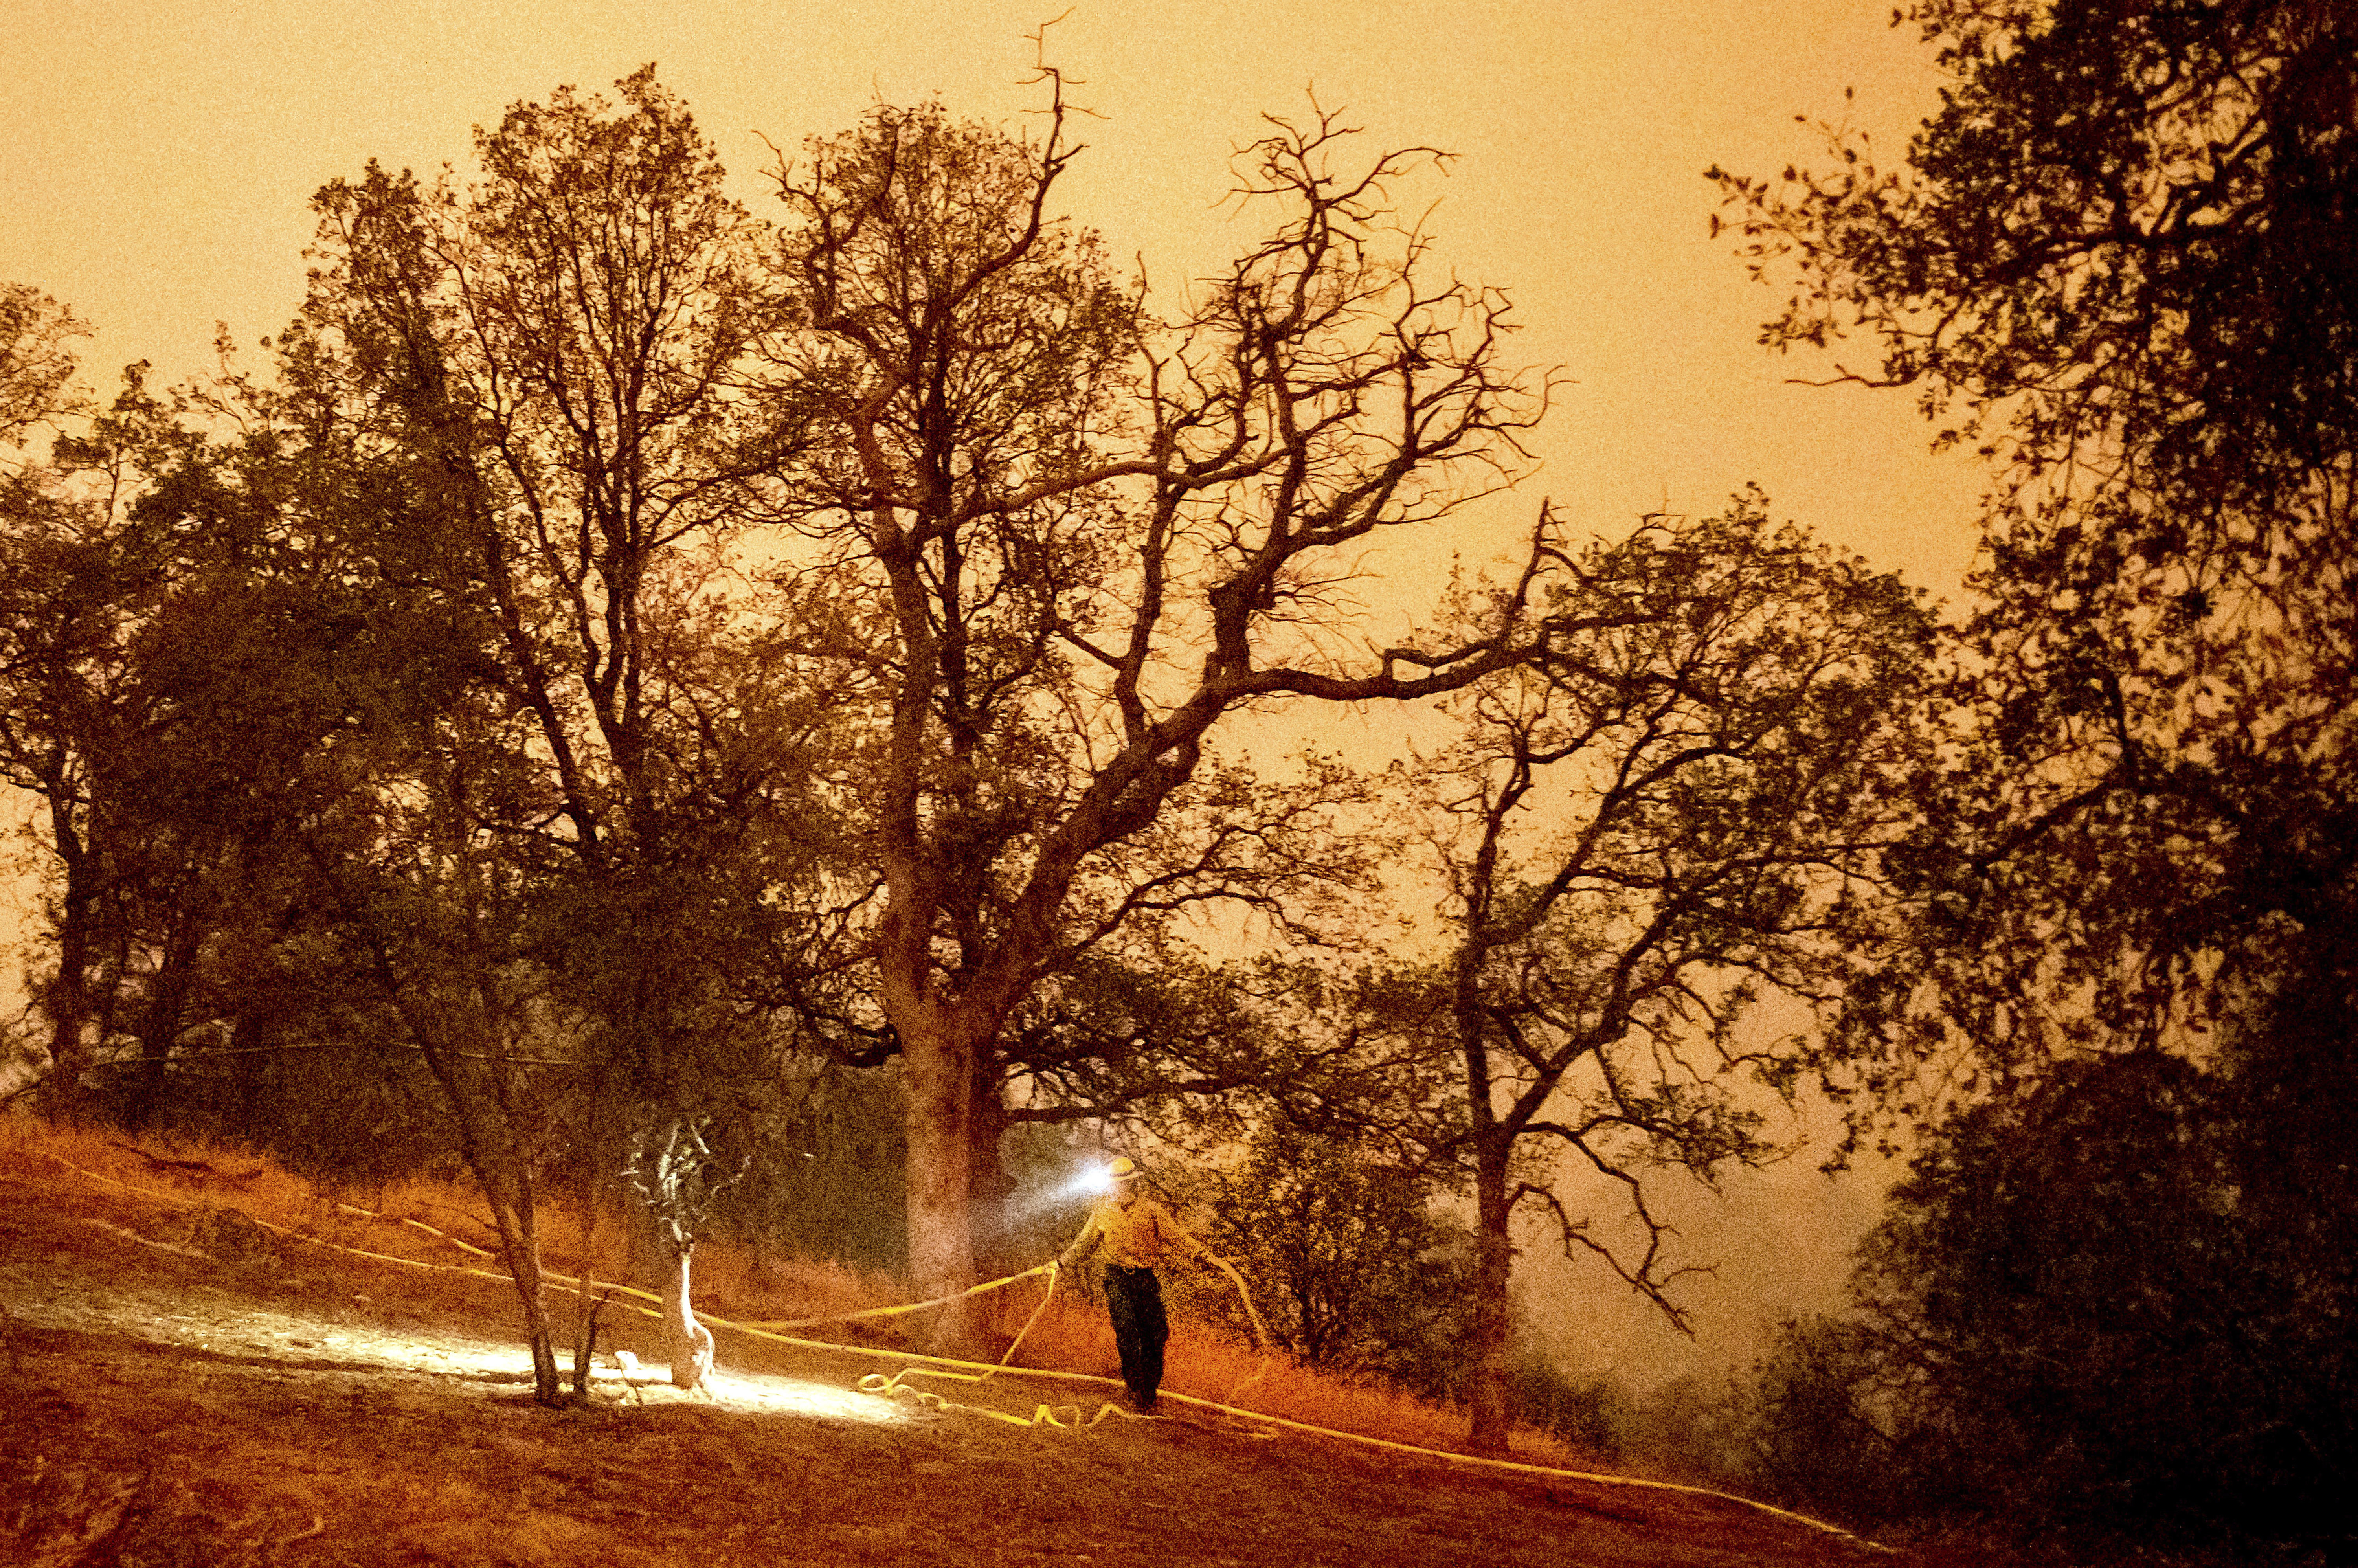 EXPLAINER: Fighting Fire With Fire To Protect Sequoia Trees